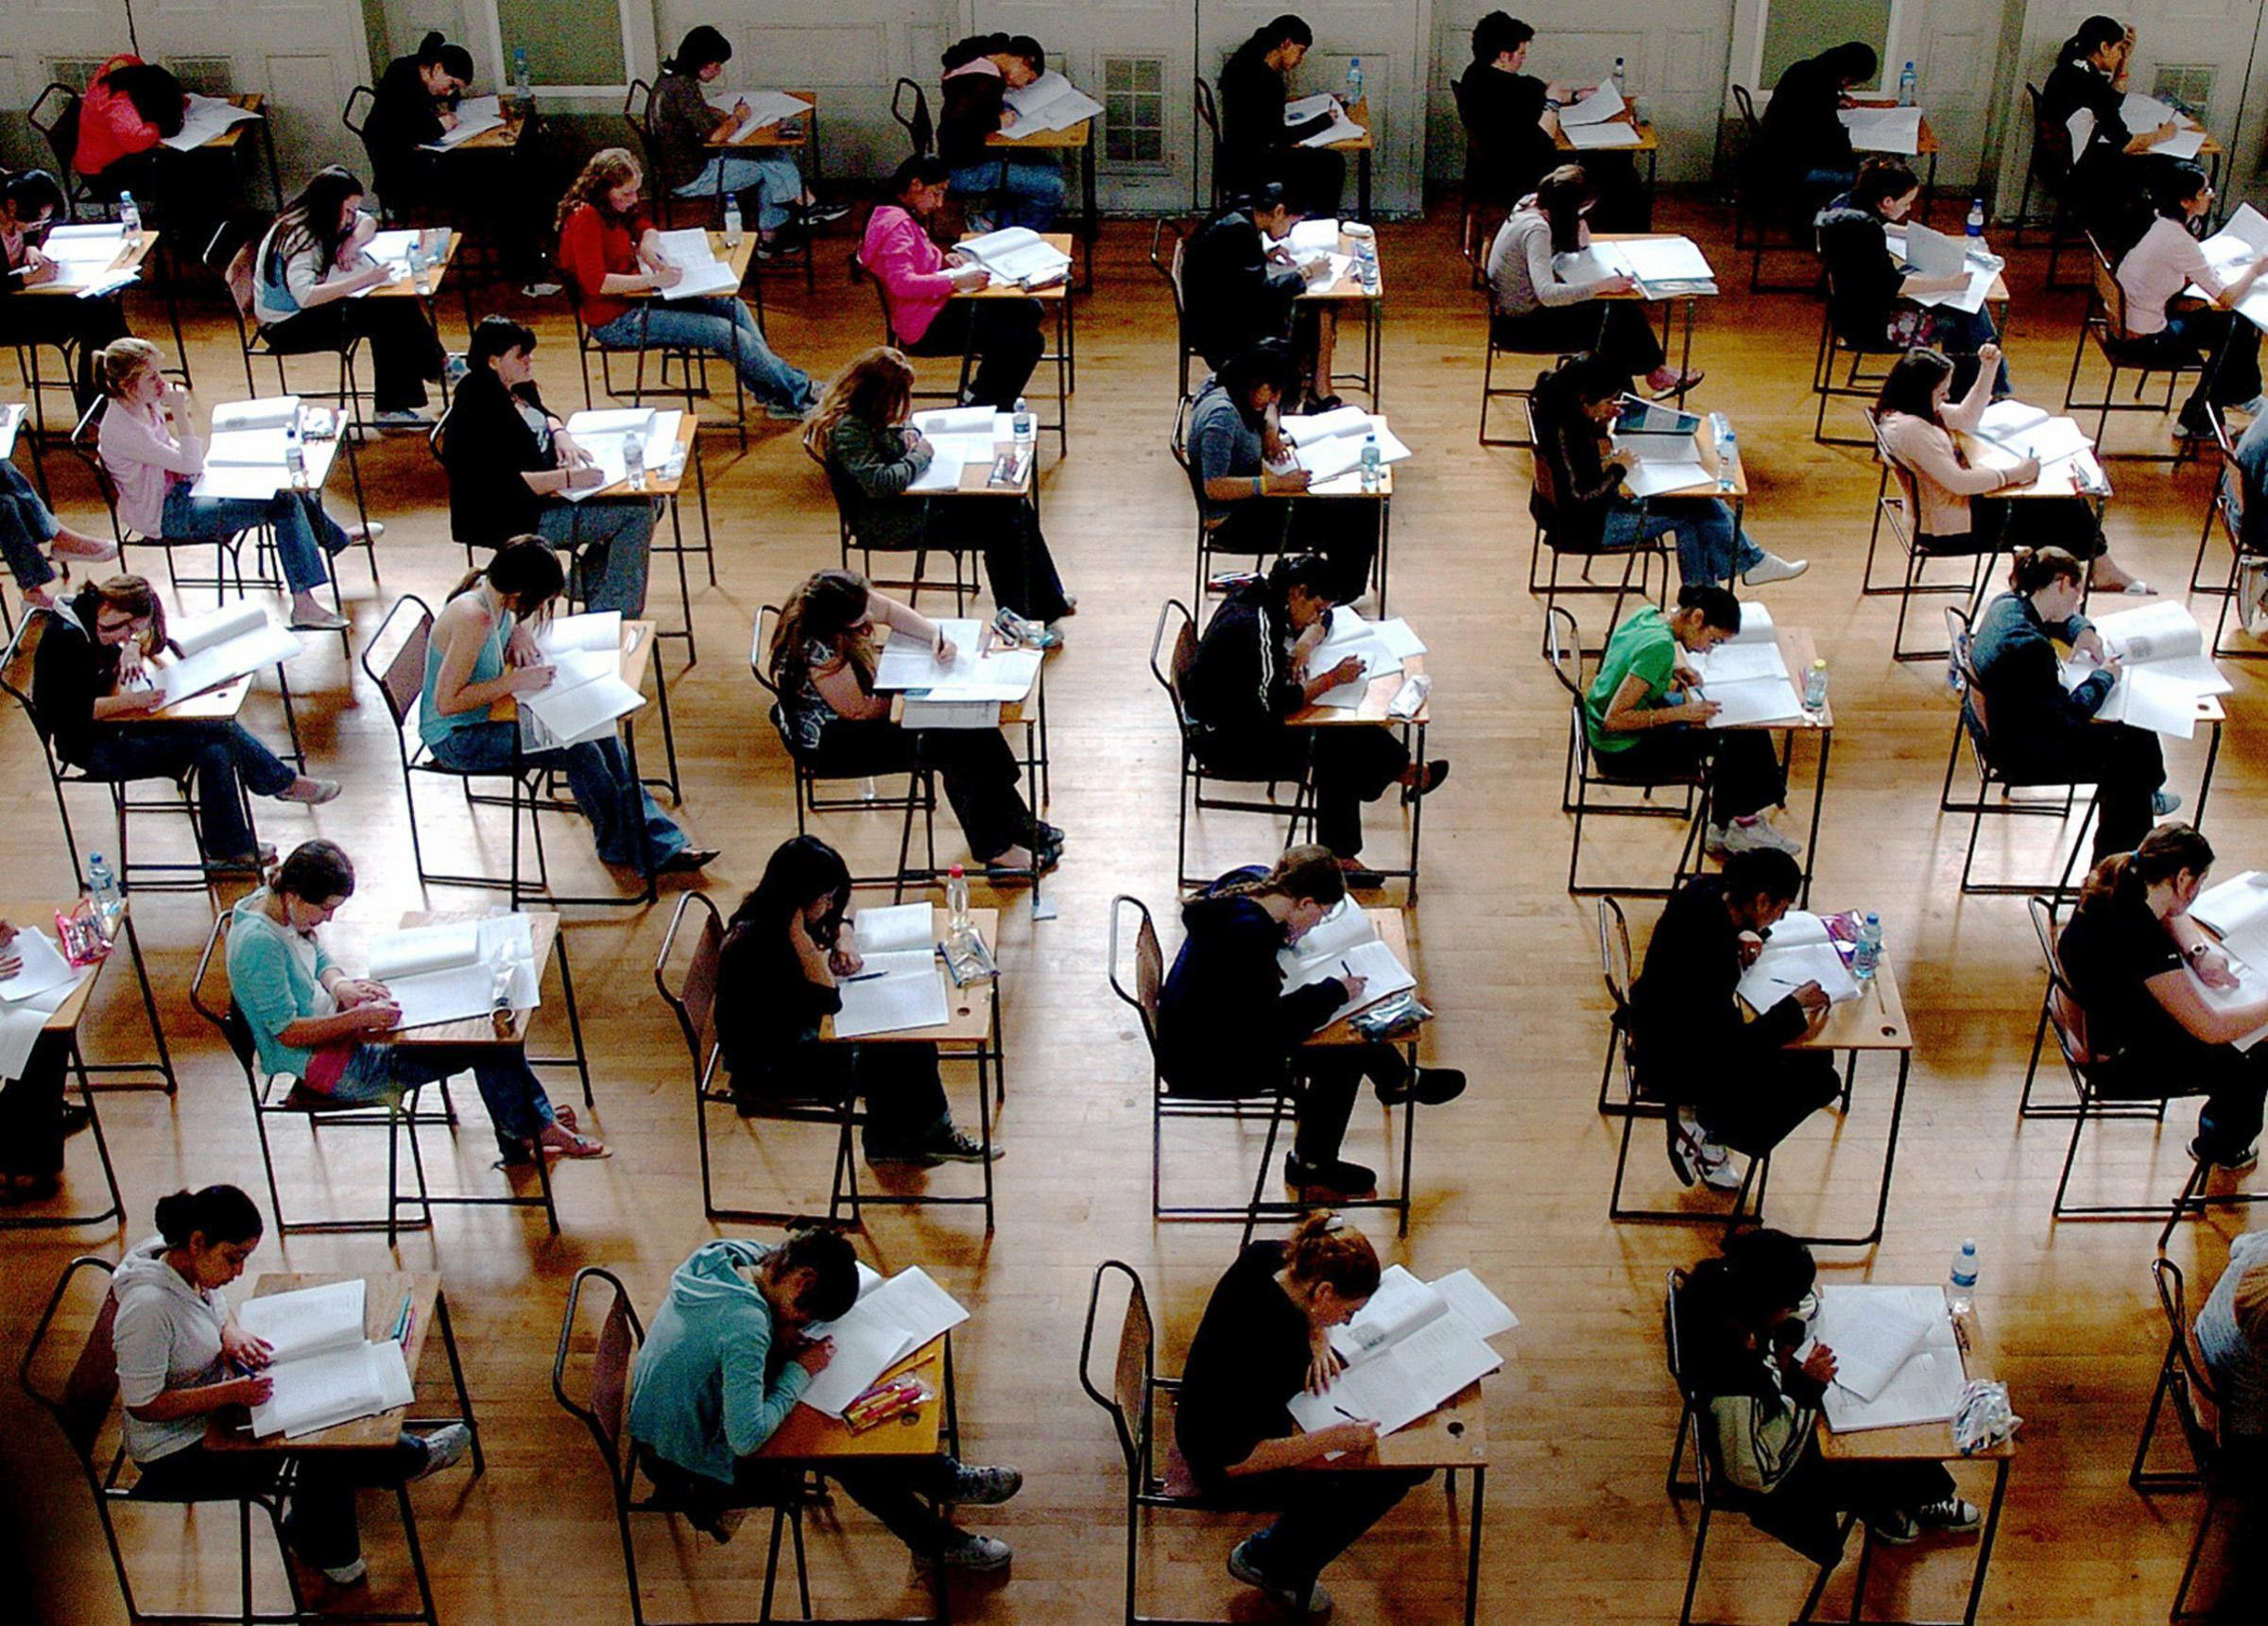 university entrance exams in turkey should be abolished essay